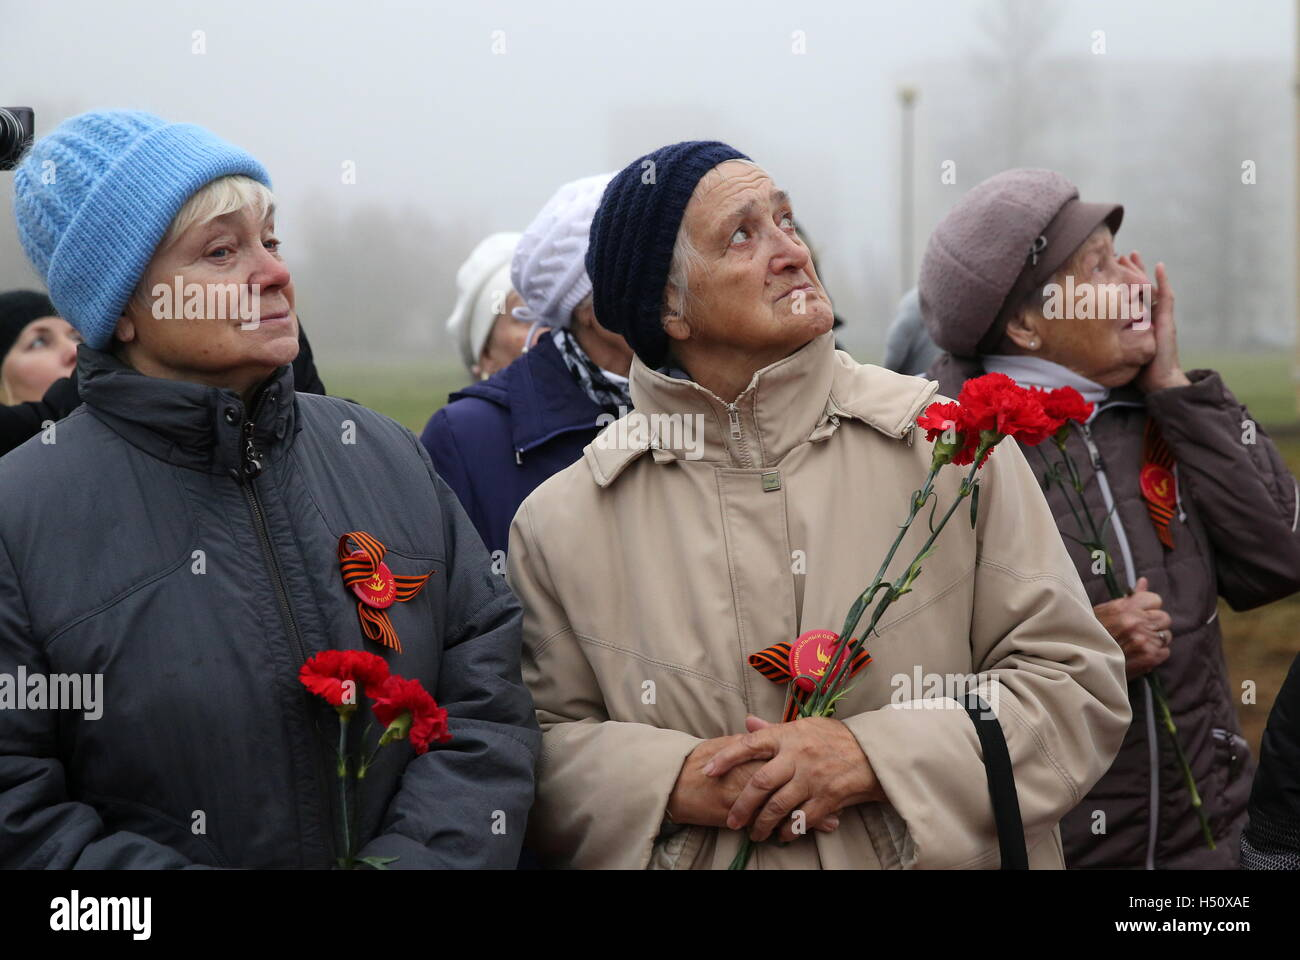 TIKHVIN, LENINGRAD REGION, RUSSIA - OCTOBER 14, 2016: People lay flowers at a war memorial unveiled to mark the - Stock Image